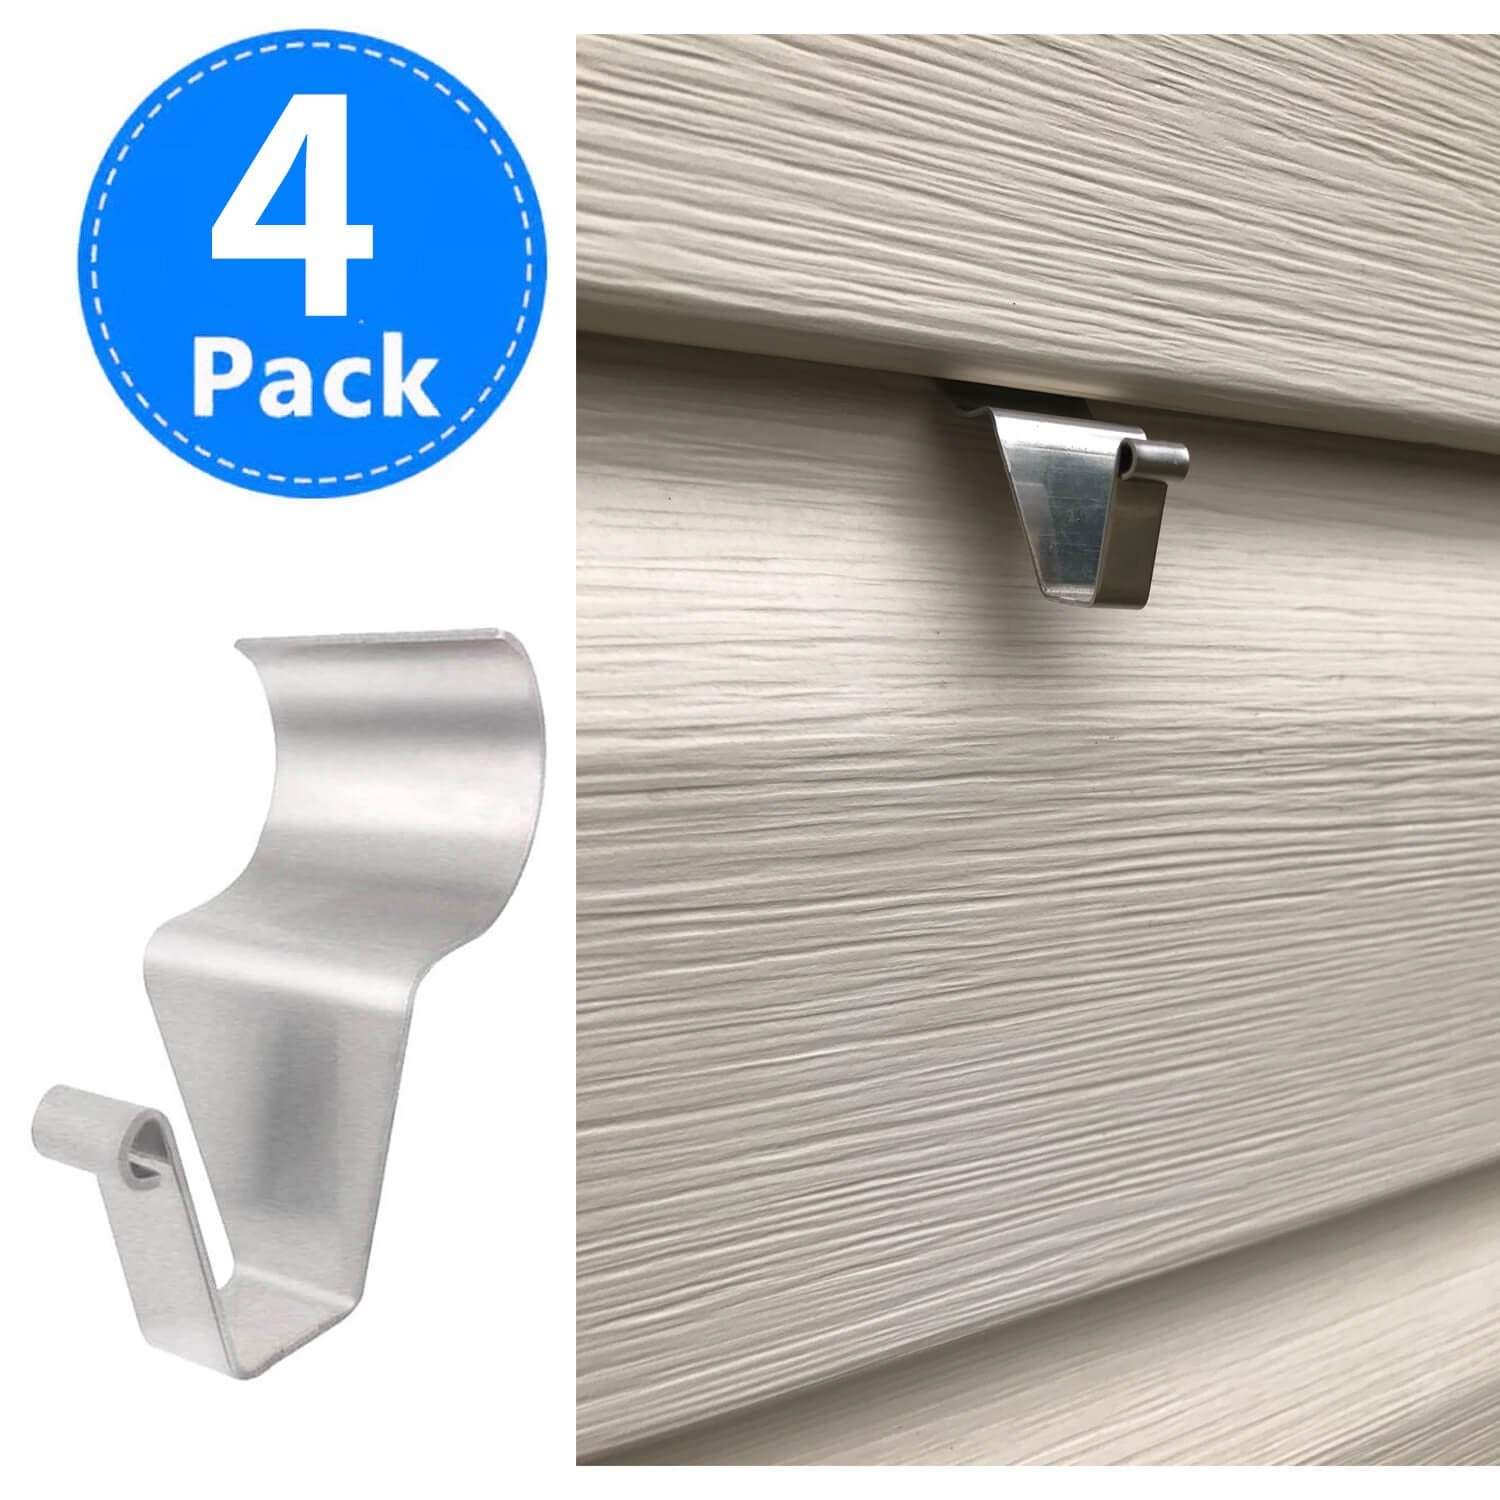 Vinyl Siding Hangers, Heavy Duty Outdoor Light Wreath Pictures Hook for Hanging 4 Pack